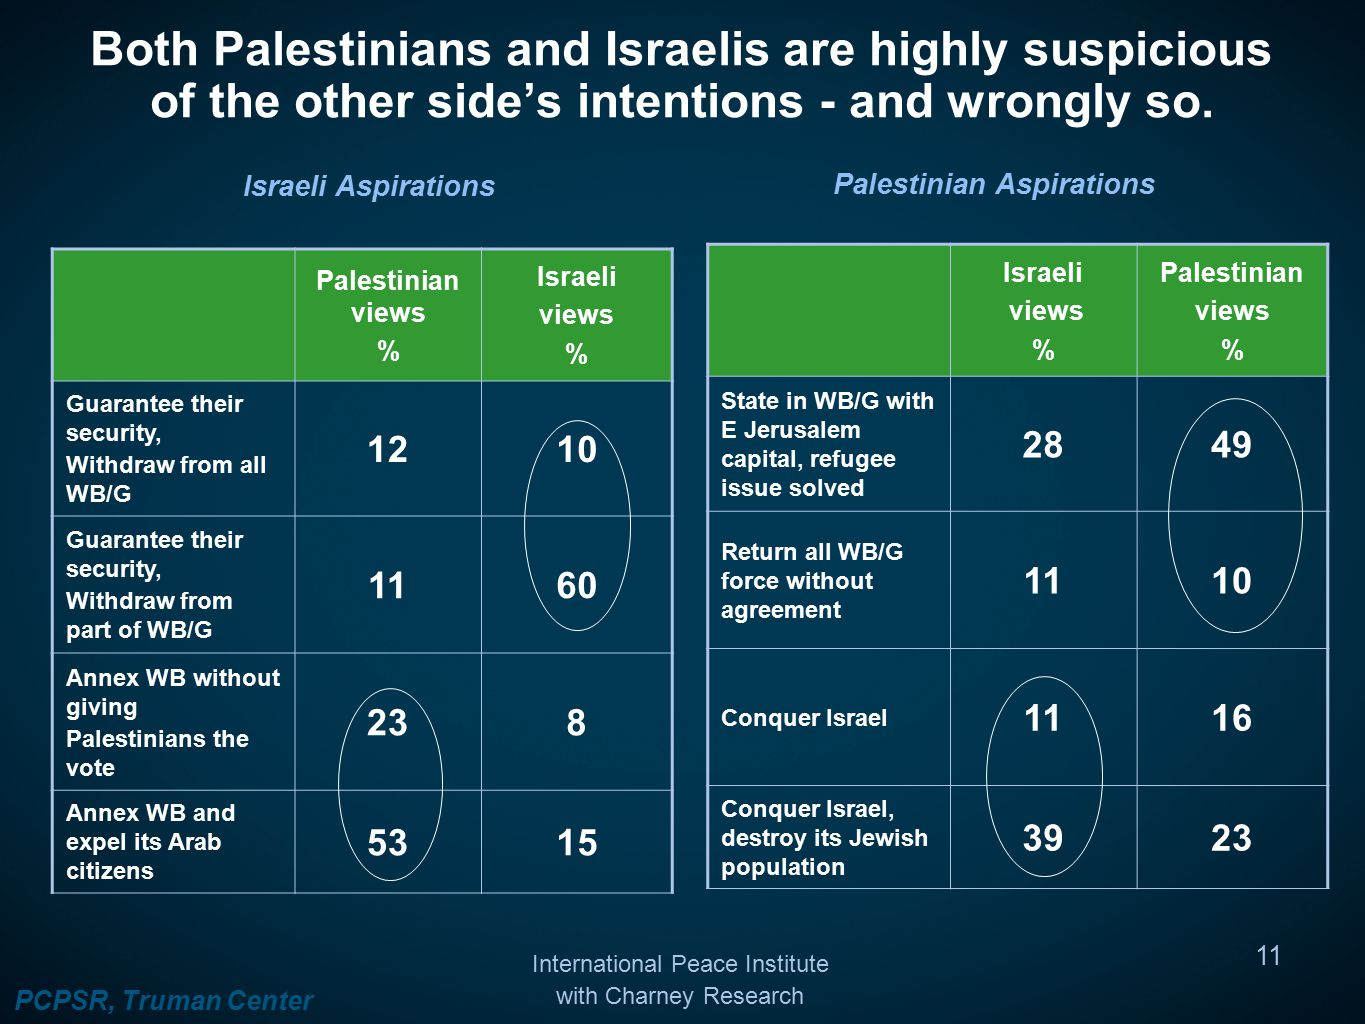 Both Palestinians and Israelis are highly suspicious of the other side's intentions - and wrongly so.